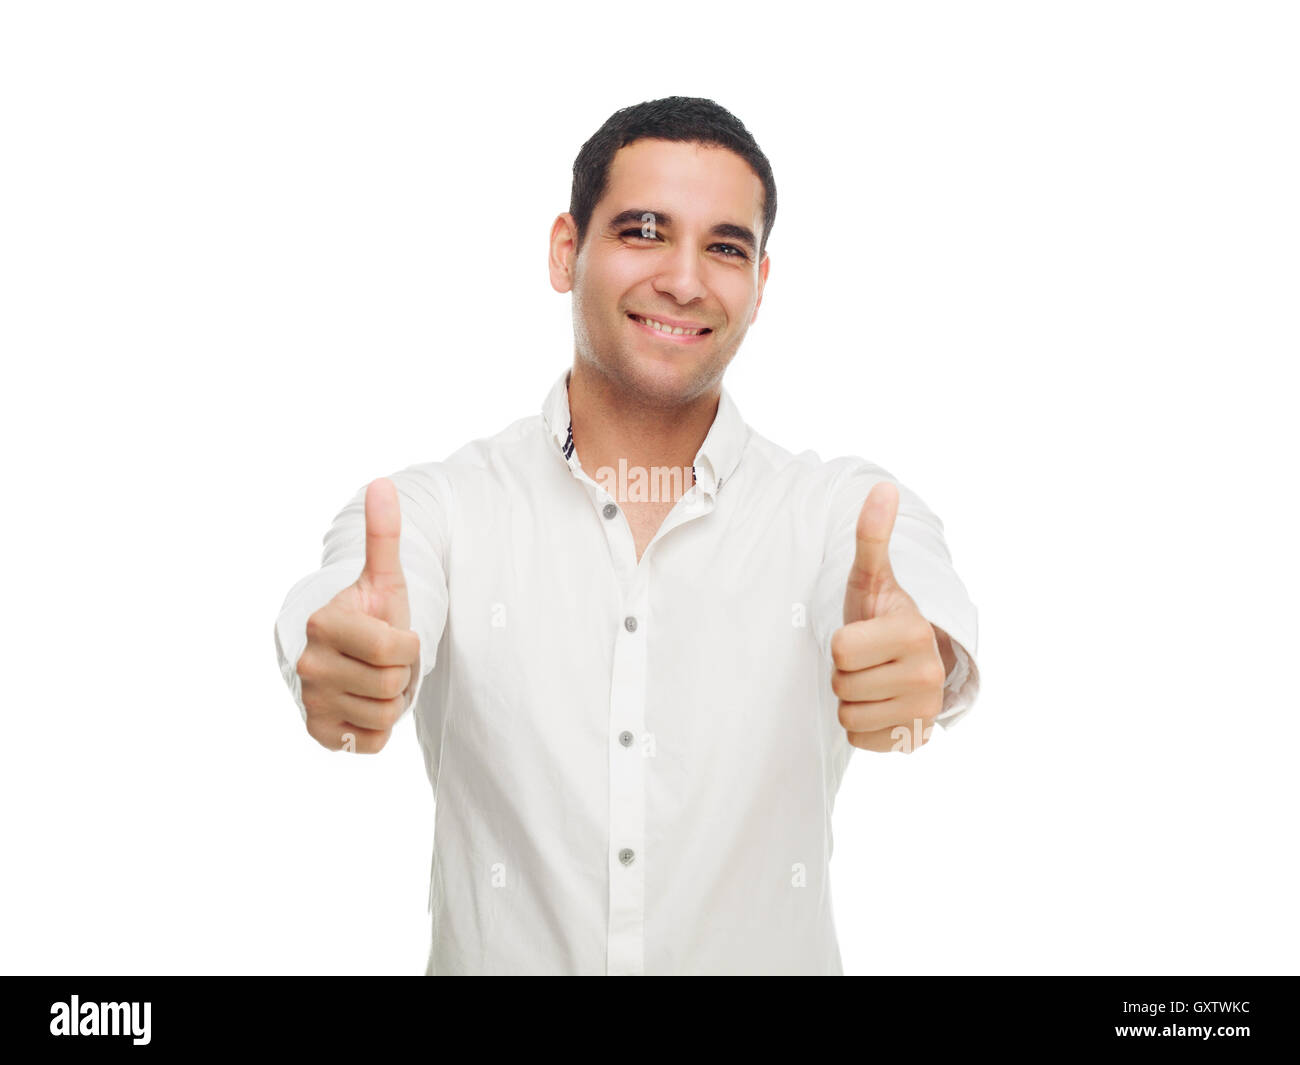 happy smiling young man with his thumbs up isolated against white studio background - Stock Image